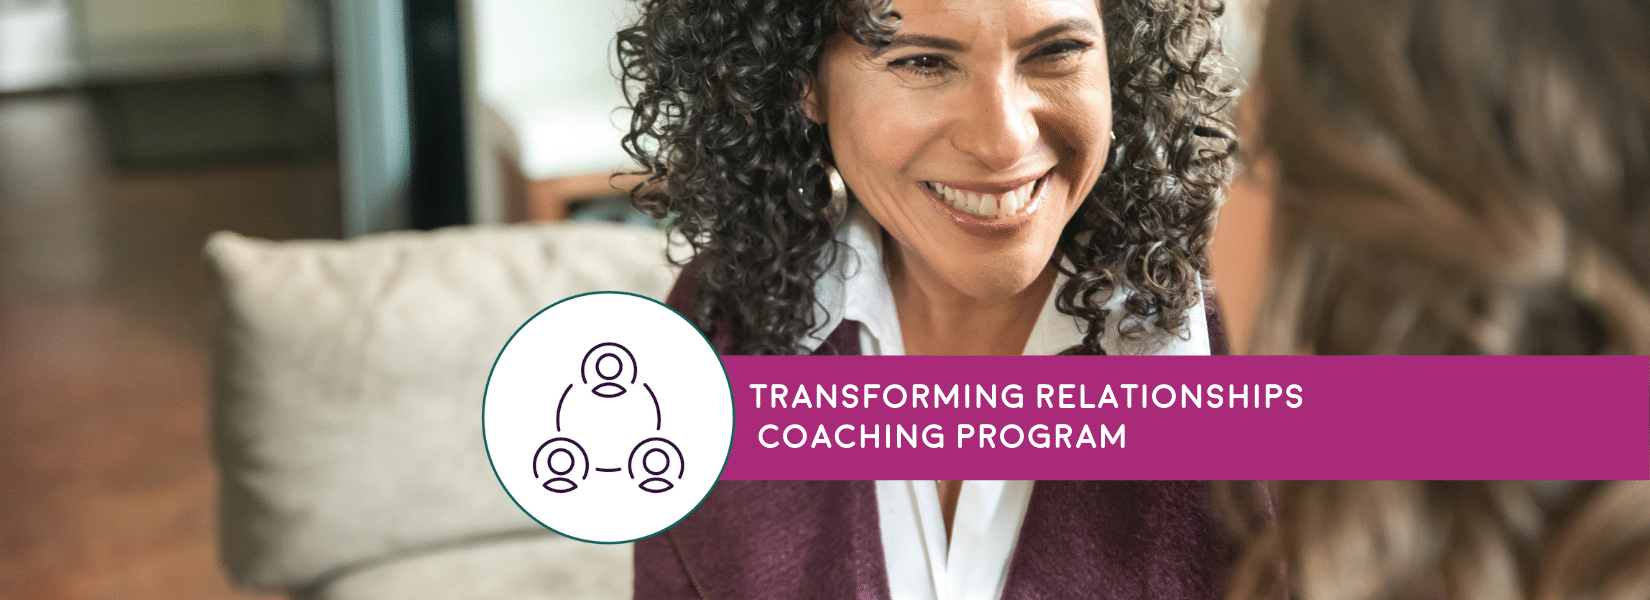 Tr. Relationships Coaching Banner